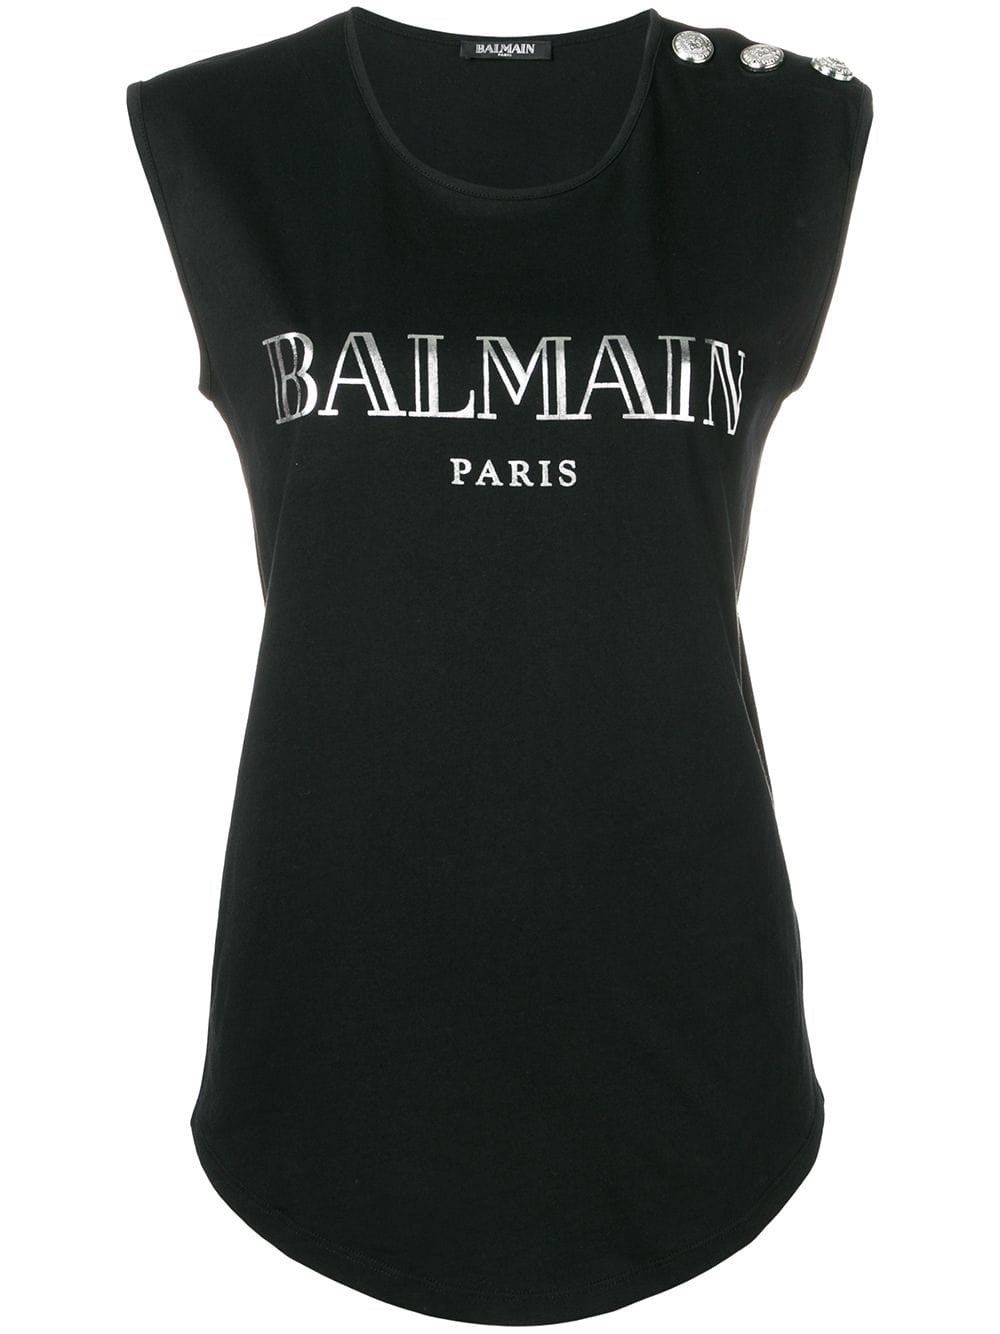 529afa42 balmain LOGO T-SHIRT available on montiboutique.com - 27366